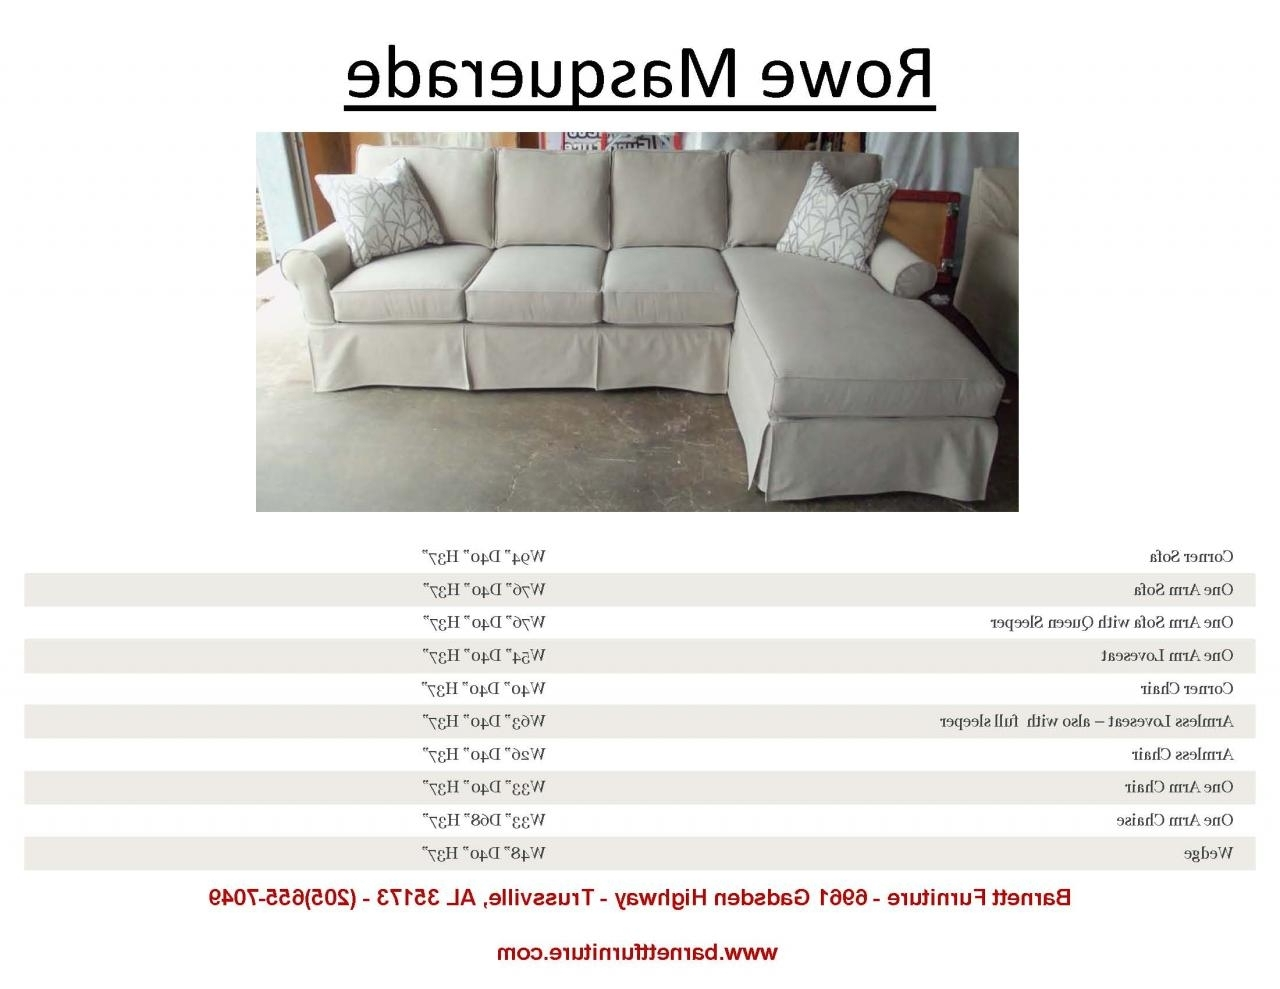 Wonderful Slipcovers For Sectional Sofas With Chaise 37 In Leather Pertaining To Well Known Slipcovers For Sectional Sofa With Chaise (View 14 of 15)